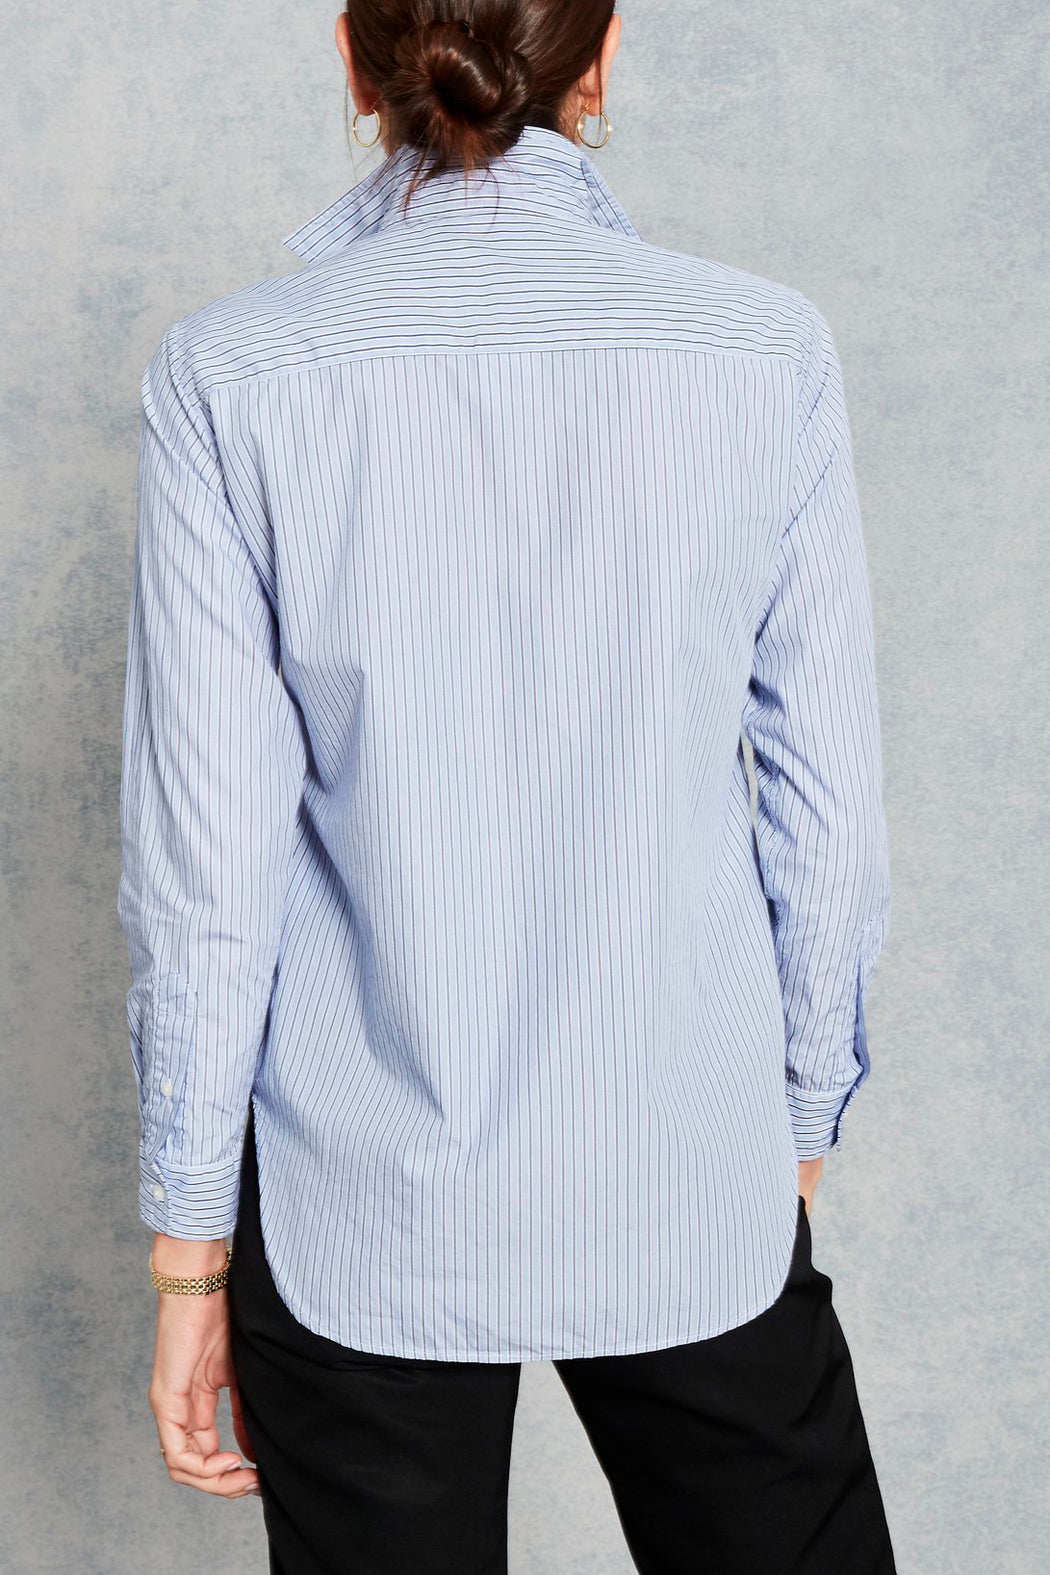 Frank Navy Mens Stripe